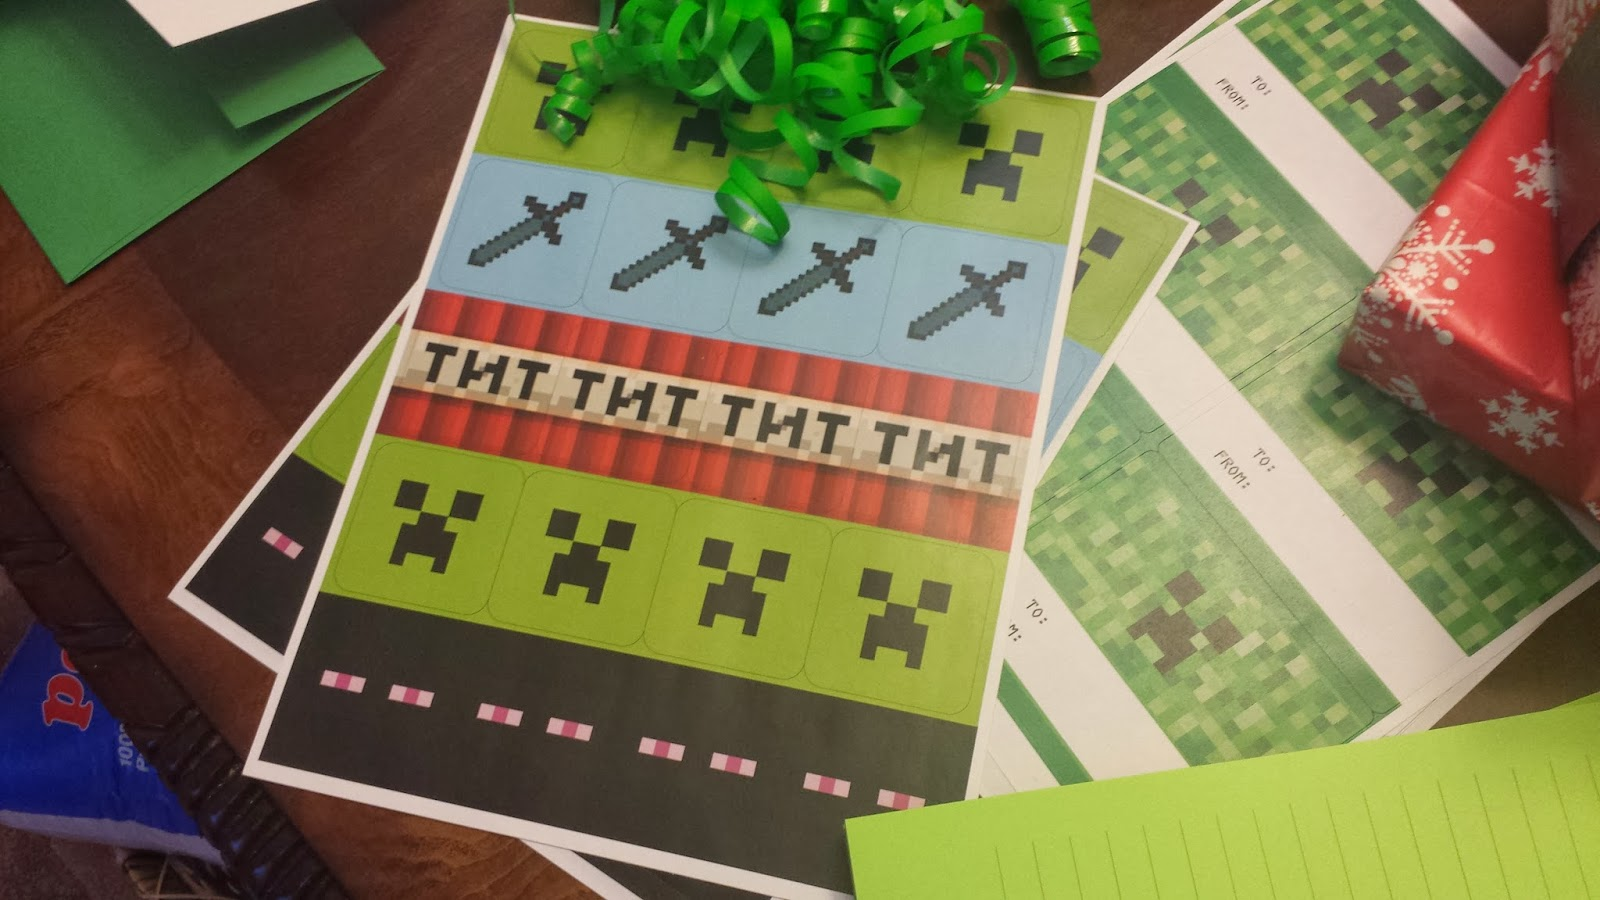 Minecraft Invitation Card for nice invitations design